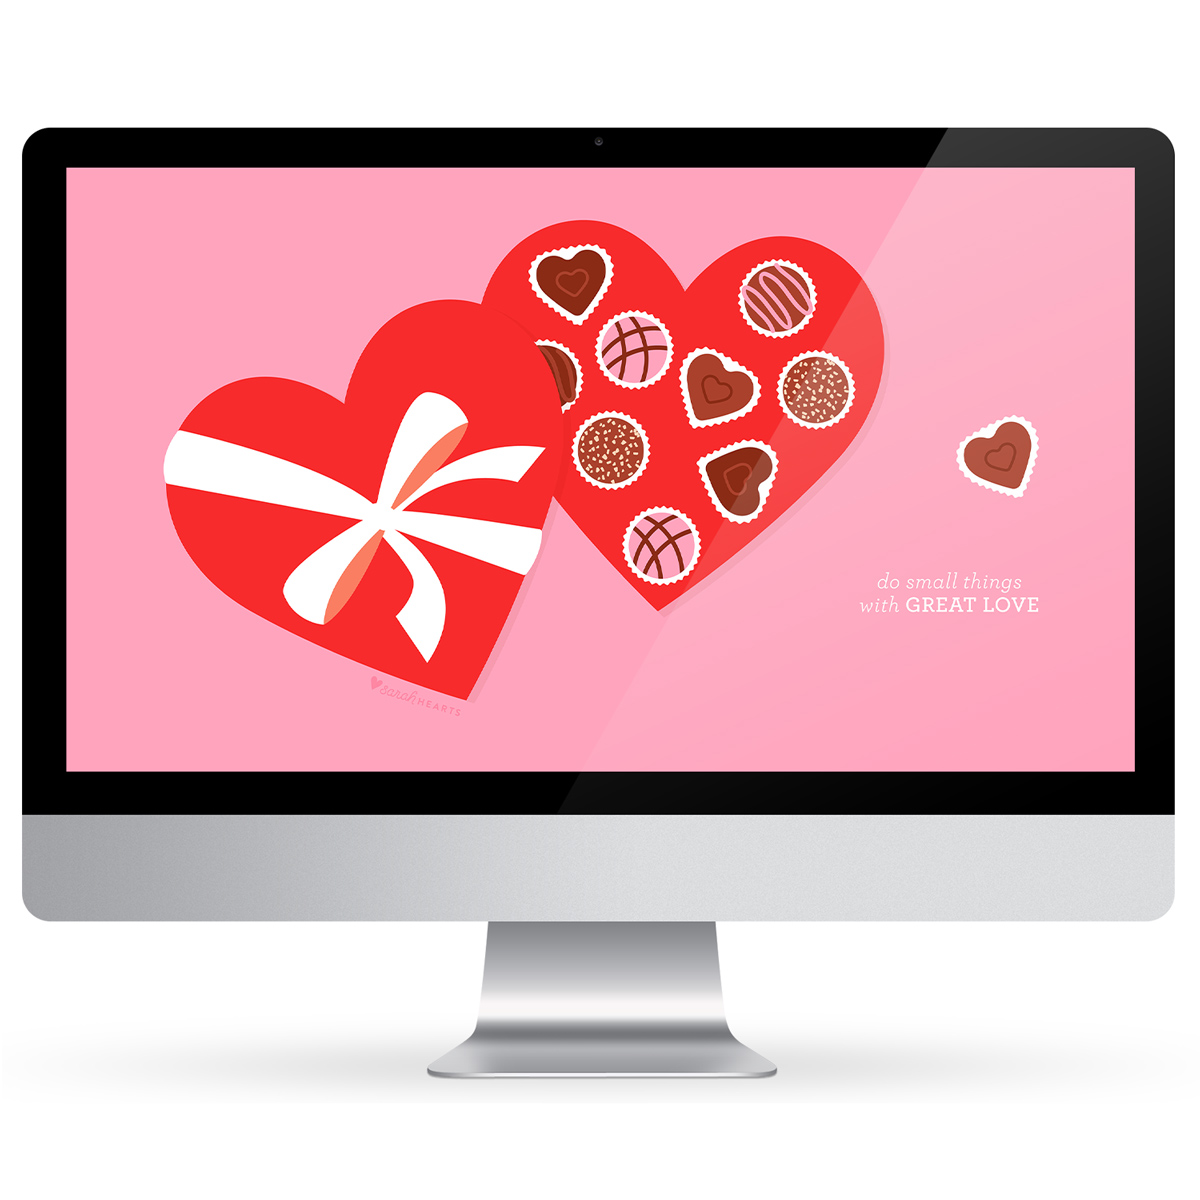 Show your computer, phone and tablet some love this season with this free Valentine's Day heart chocolate box wallpaper!